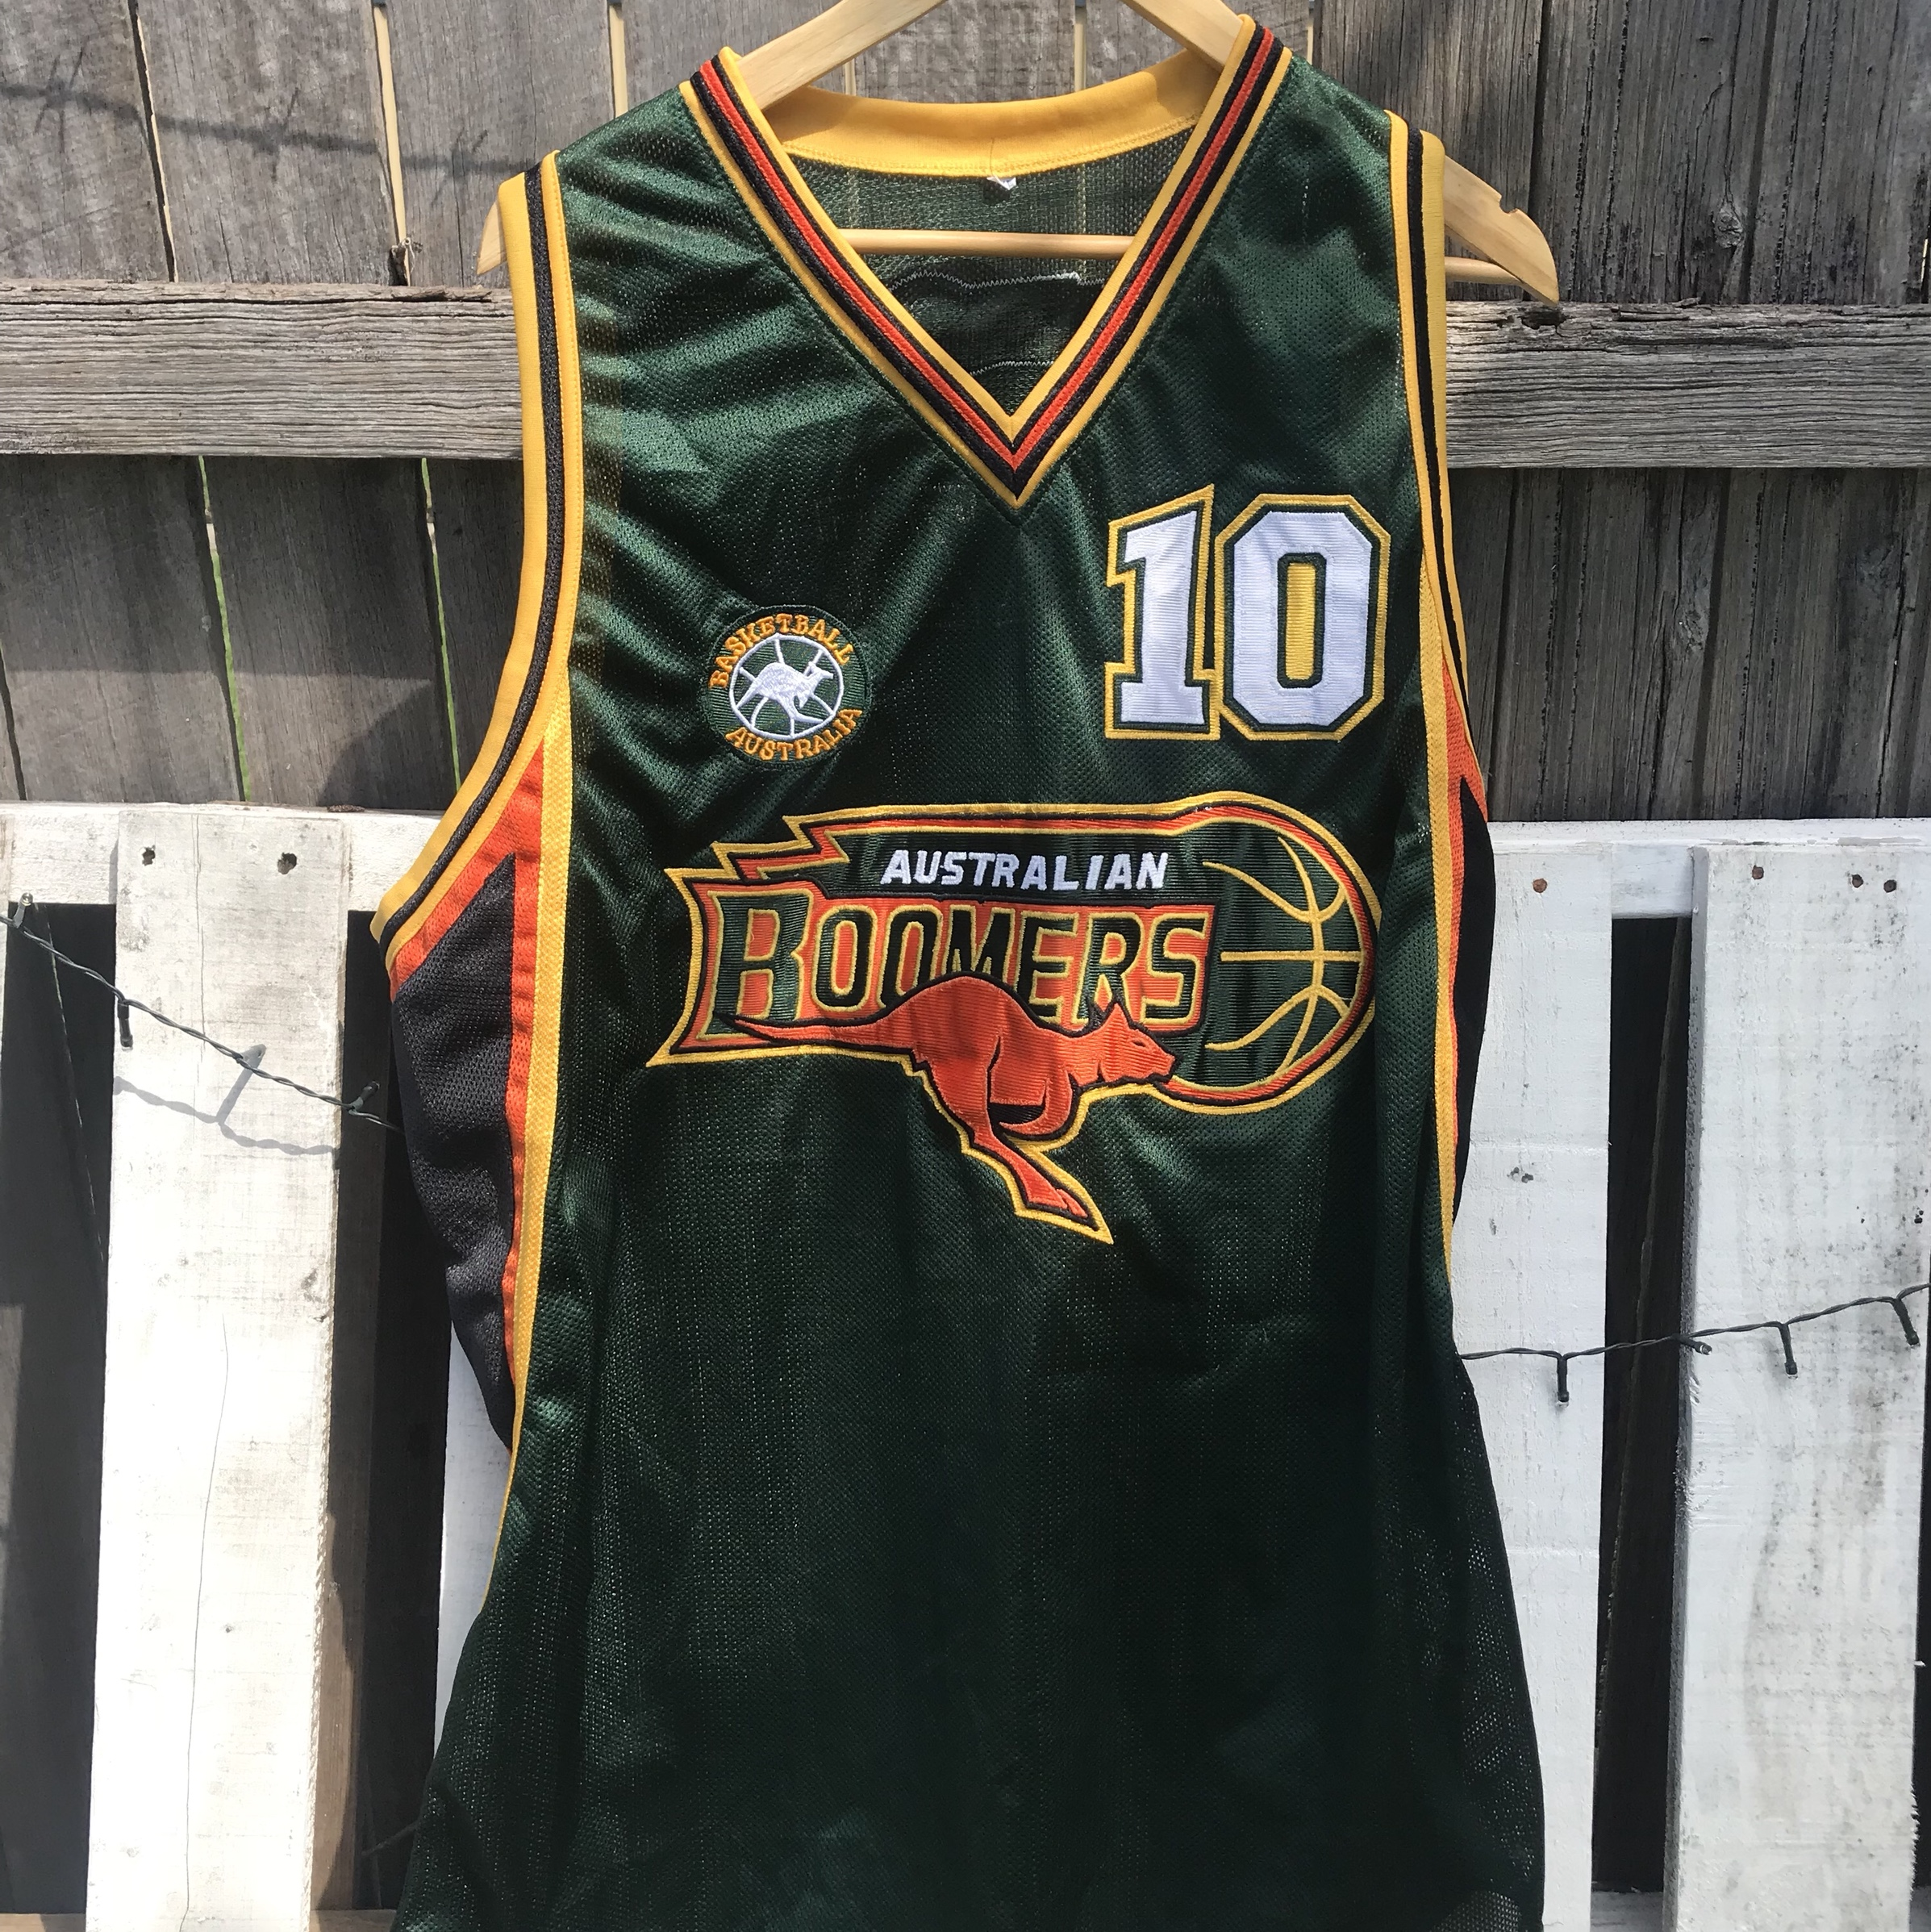 Andrew Gaze Boomers 90s style Jersey , Says XXL on...